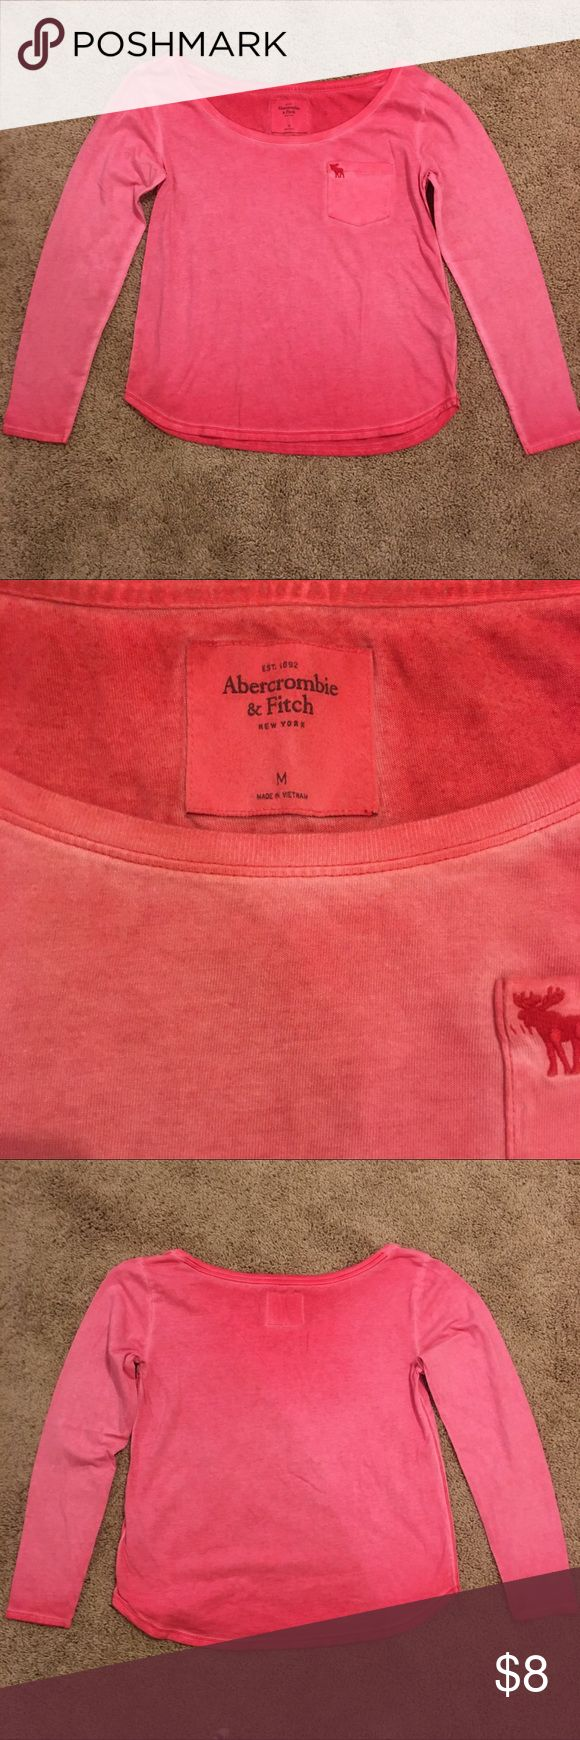 Abercrombie and Fitch top medium Abercrombie and Fitch, women's ombré red tshirt, size medium. GUC. No stains or imperfections. Bundle and save. Abercrombie & Fitch Tops Tees - Long Sleeve